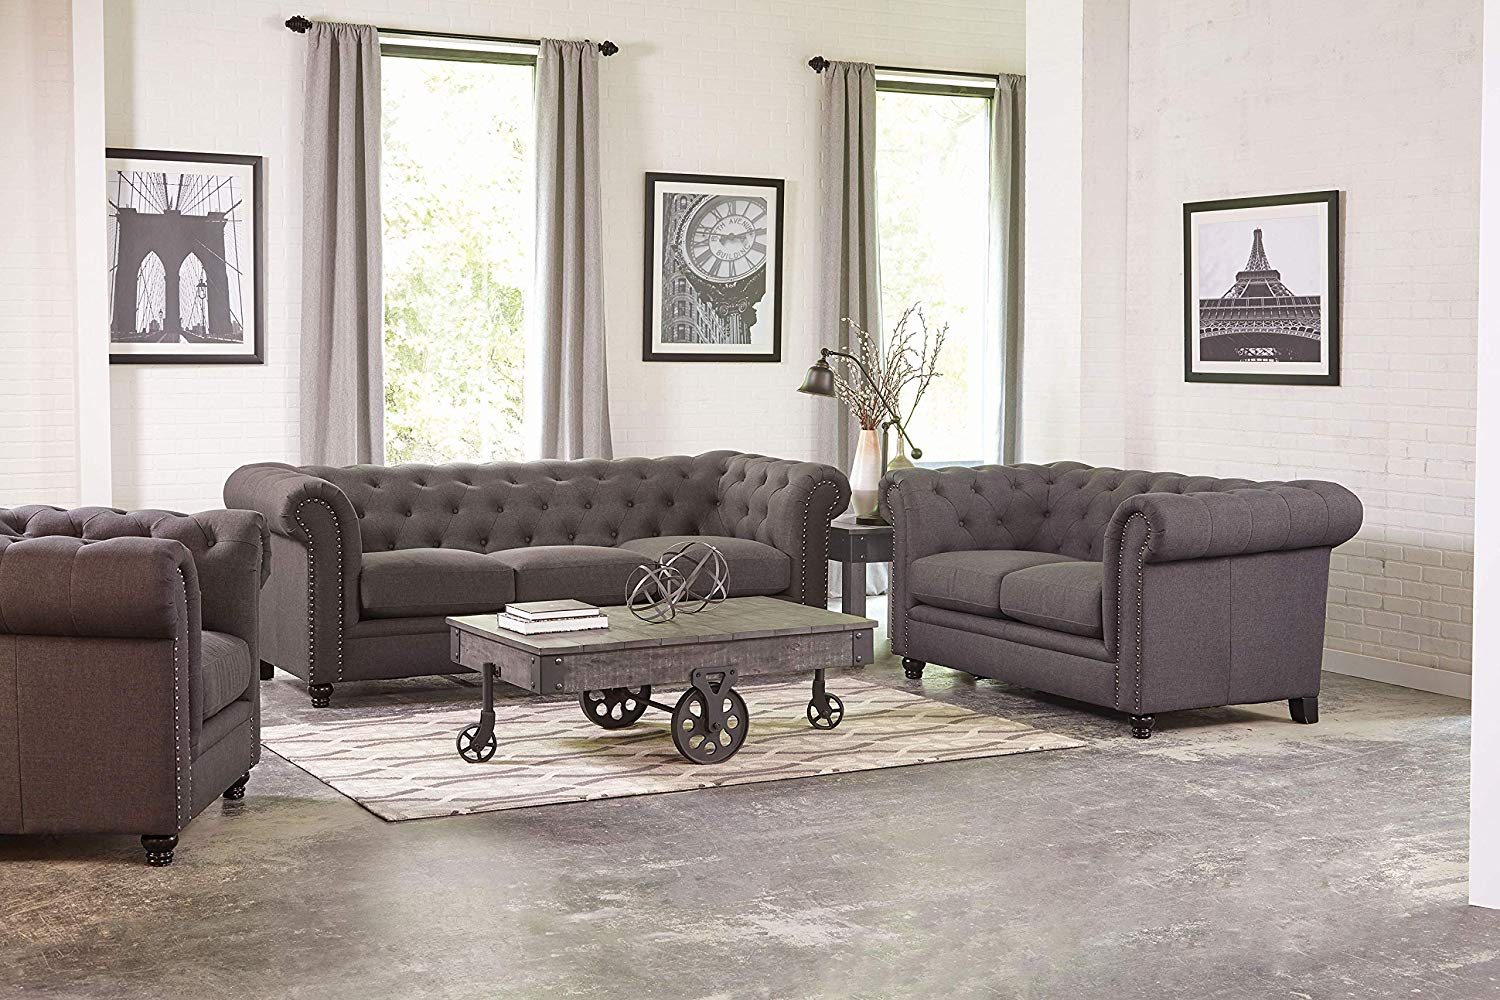 Cheap Tufted Sofa Set Find Tufted Sofa Set Deals On Line At